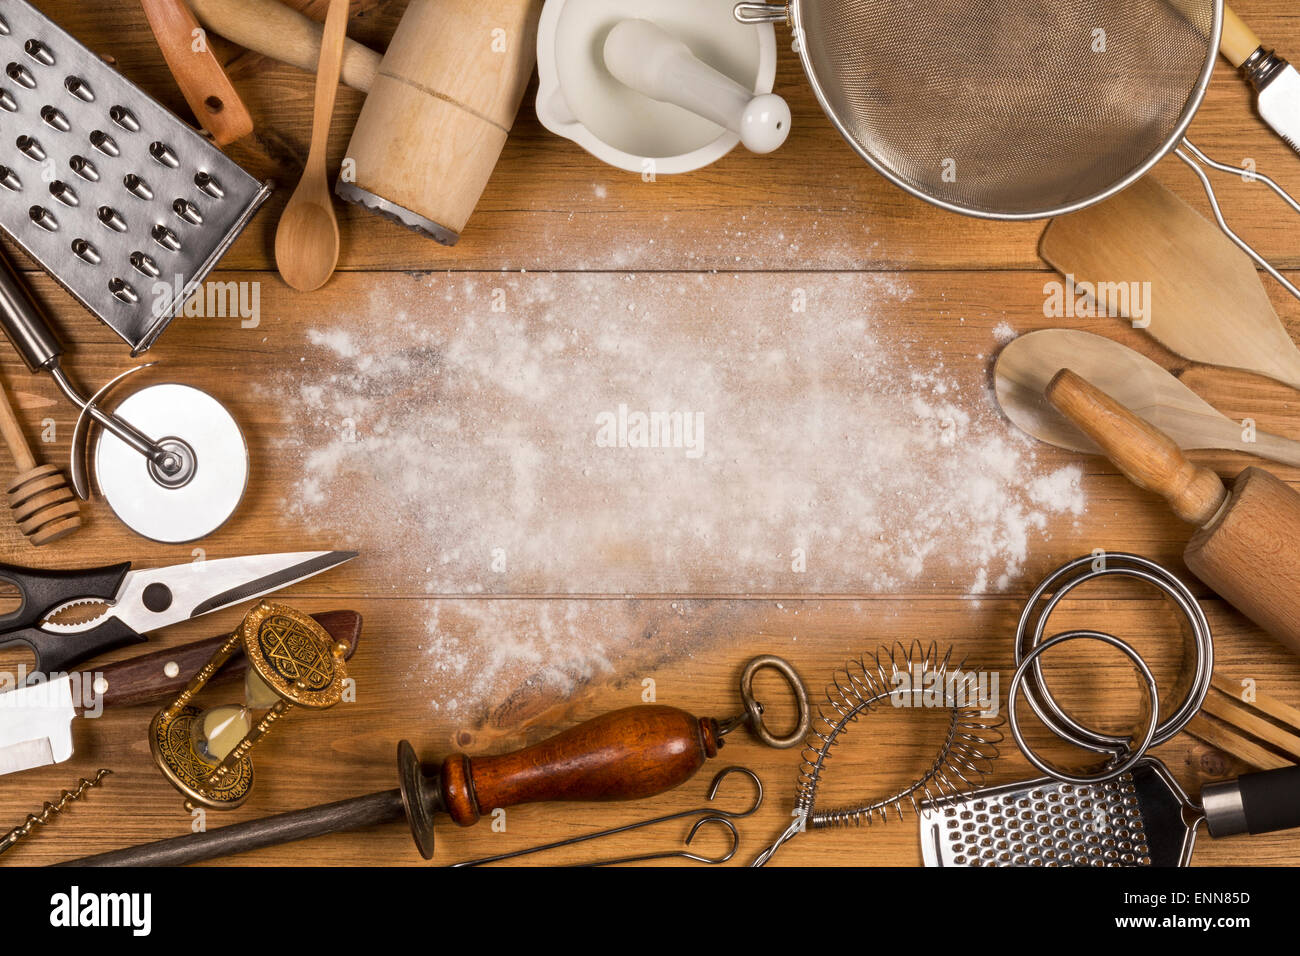 A selection of Kitchen Utensils with Space for Text - Stock Image